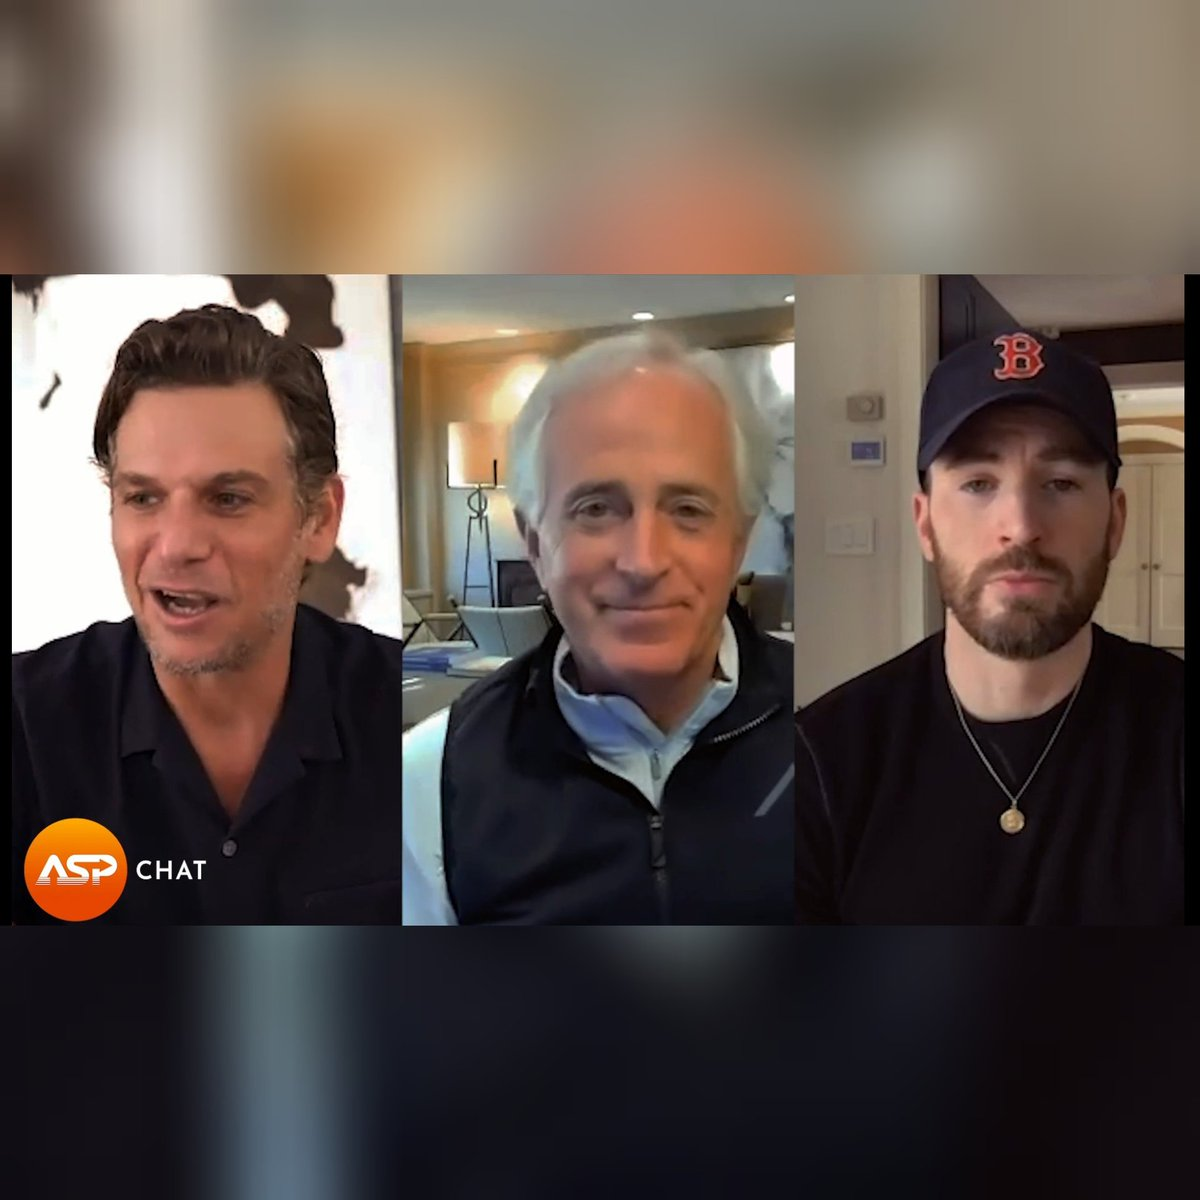 NEW #ASPChat @ChrisEvans, @MarkKassen, and former @SenBobCorker discuss bipartisanship, President Biden's foreign policies, and more.   Watch the full #ASPChat on @ASP site and app  Screenshots by me